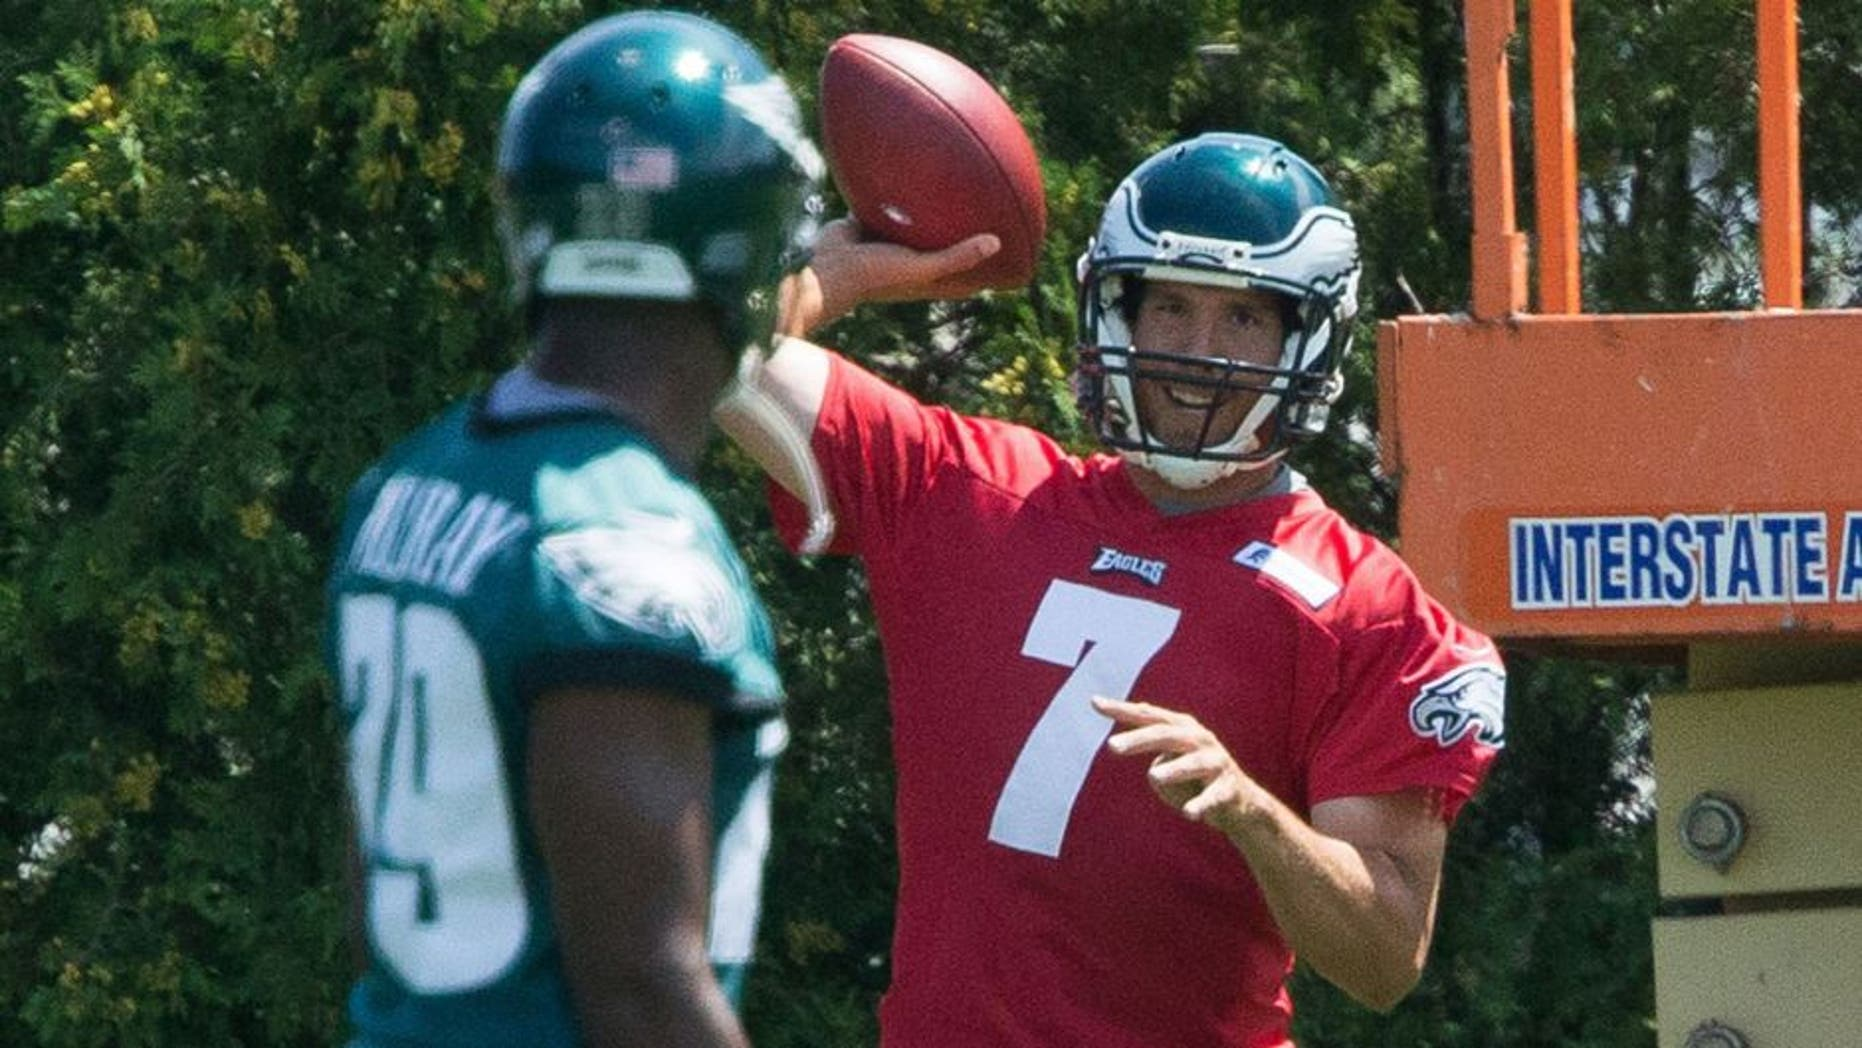 Aug 2, 2015; Philadelphia, PA, USA; Philadelphia Eagles quarterback Sam Bradford (7) throws to running back DeMarco Murray (29) during training camp at NovaCare Complex. Mandatory Credit: Bill Streicher-USA TODAY Sports